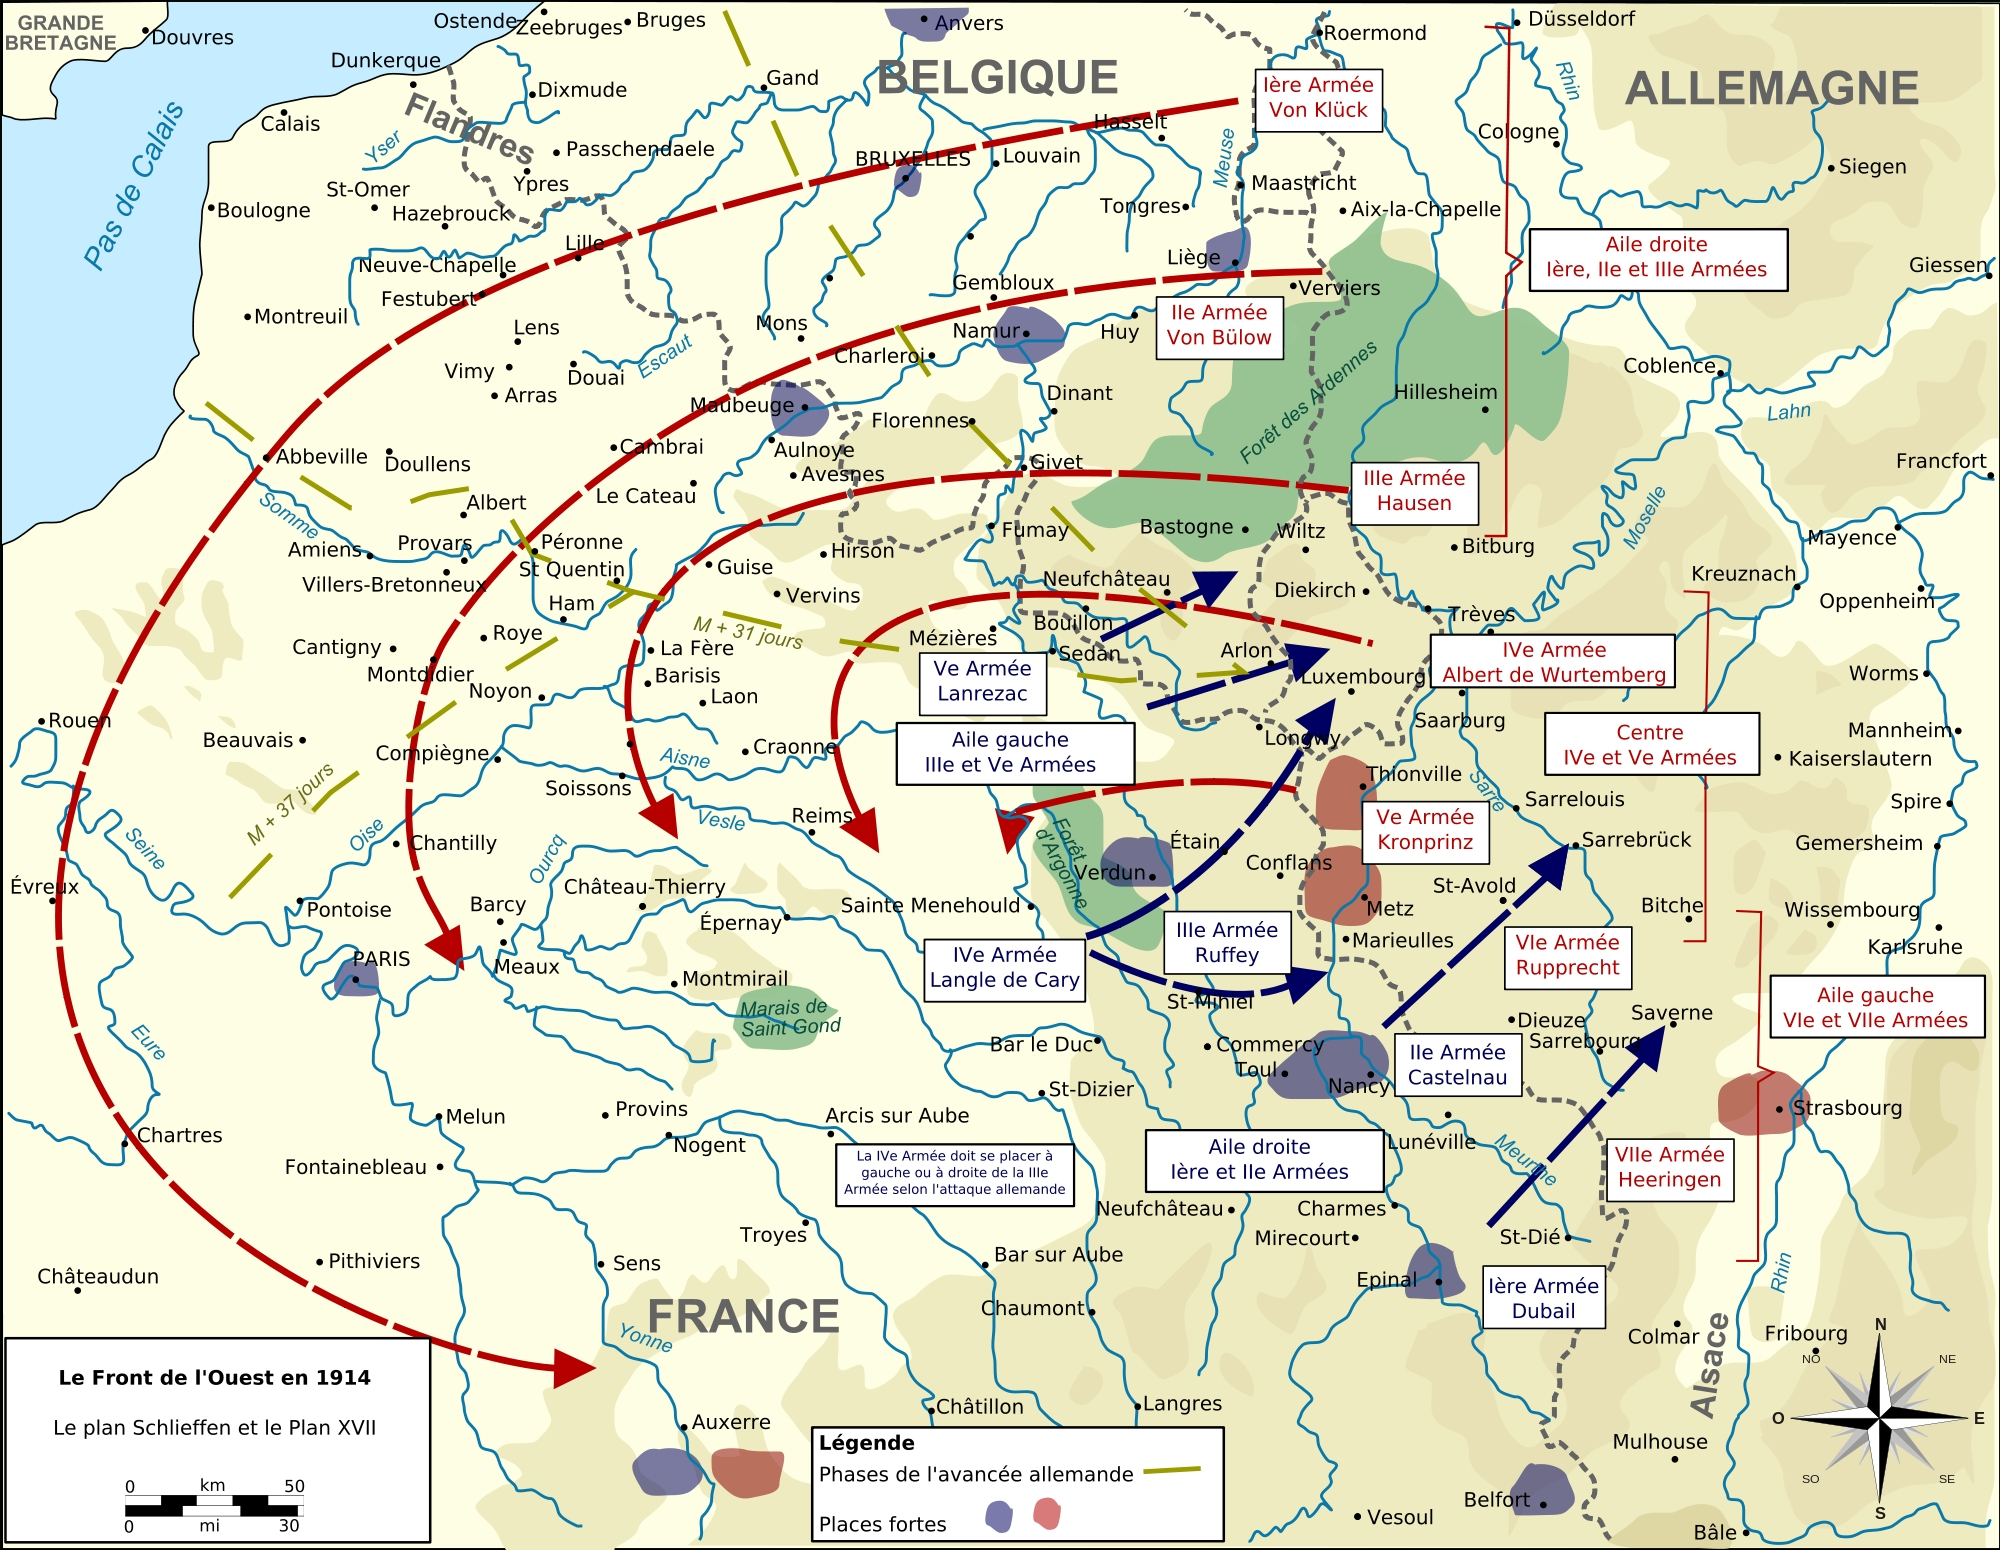 40 Maps That Explain World War I | Vox pertaining to Germany World War 1 Map